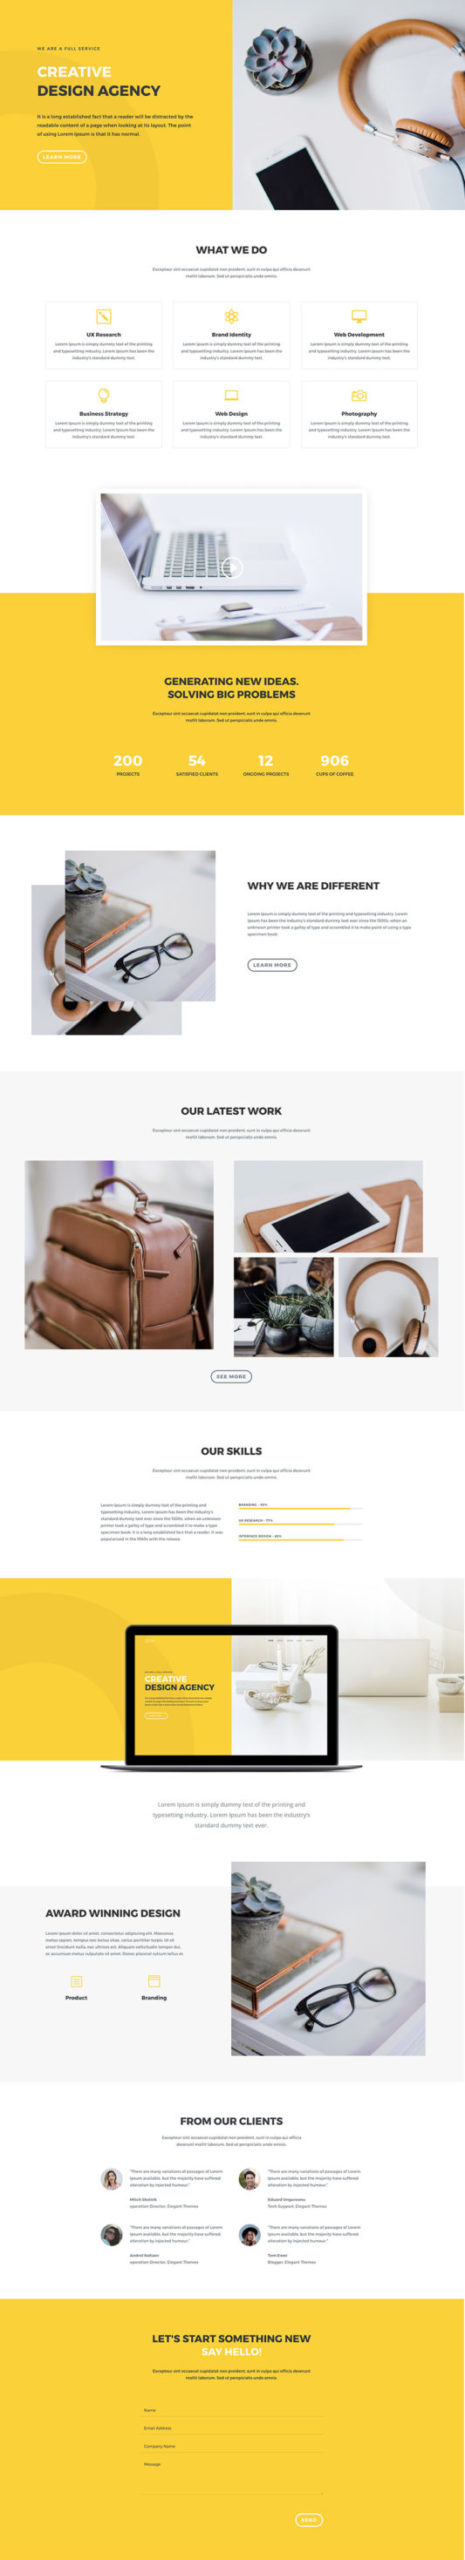 Design Agency Home Page - full page